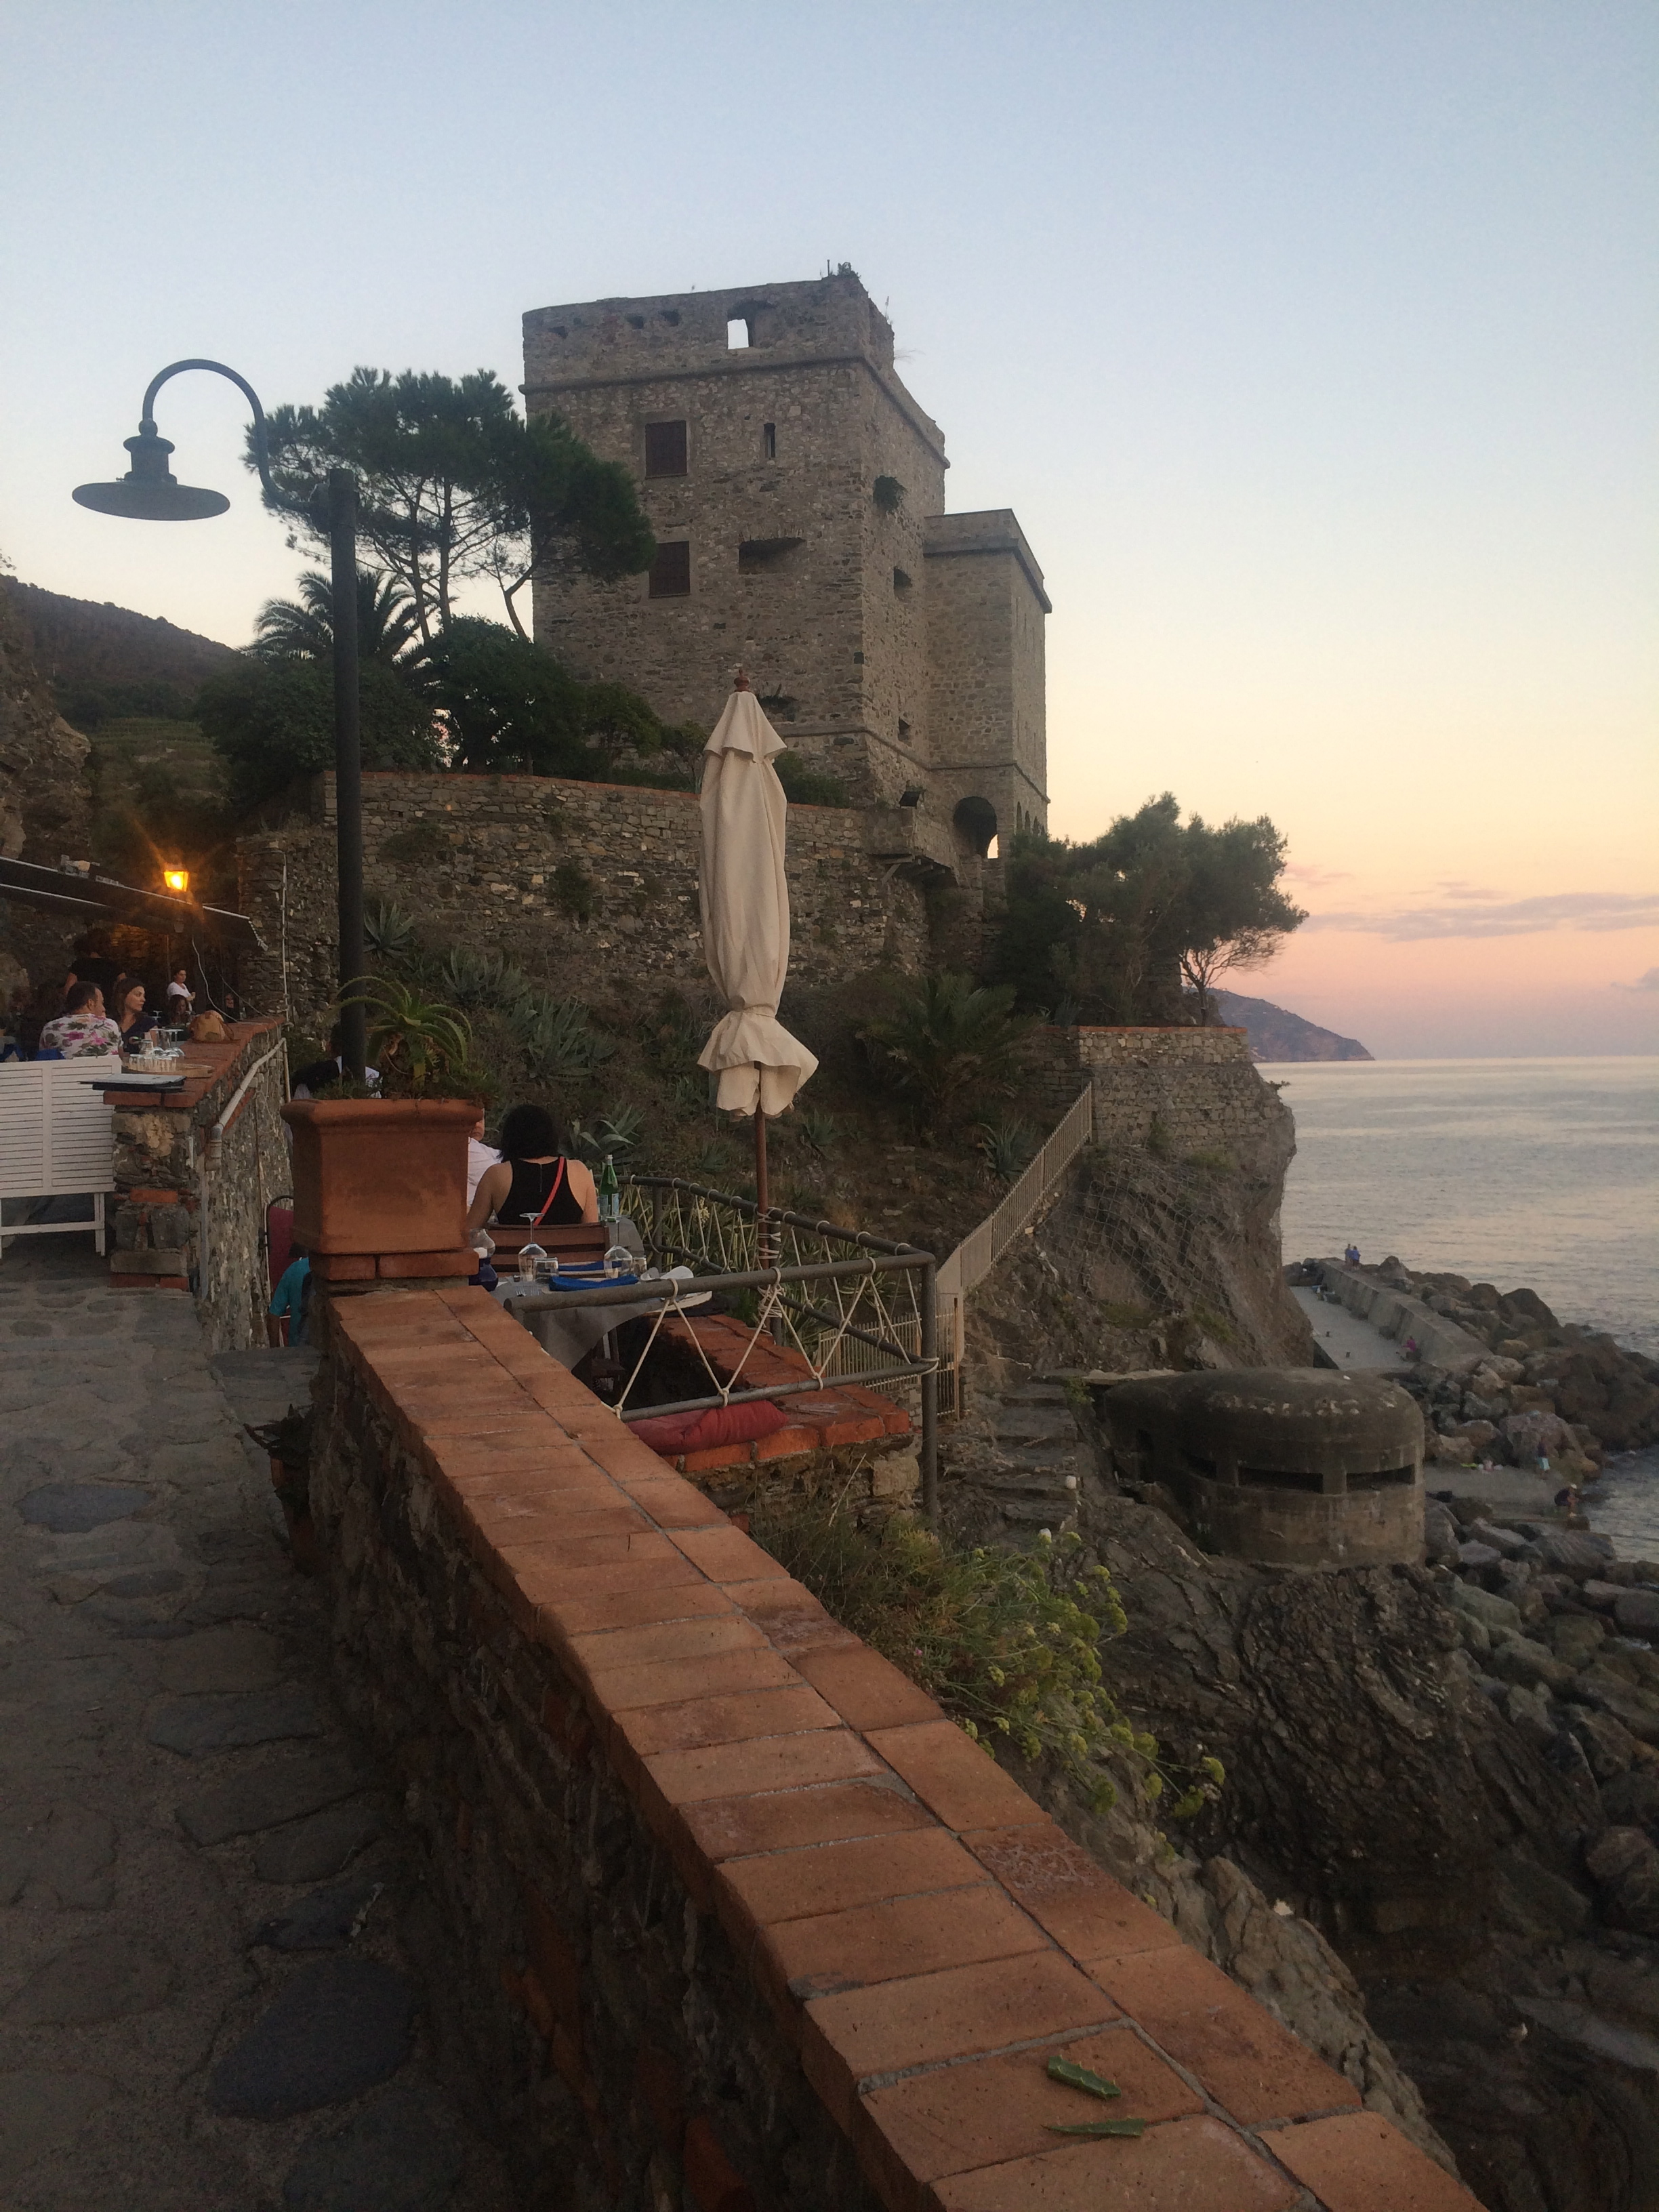 Castles by the sea are pretty stunningly cool.